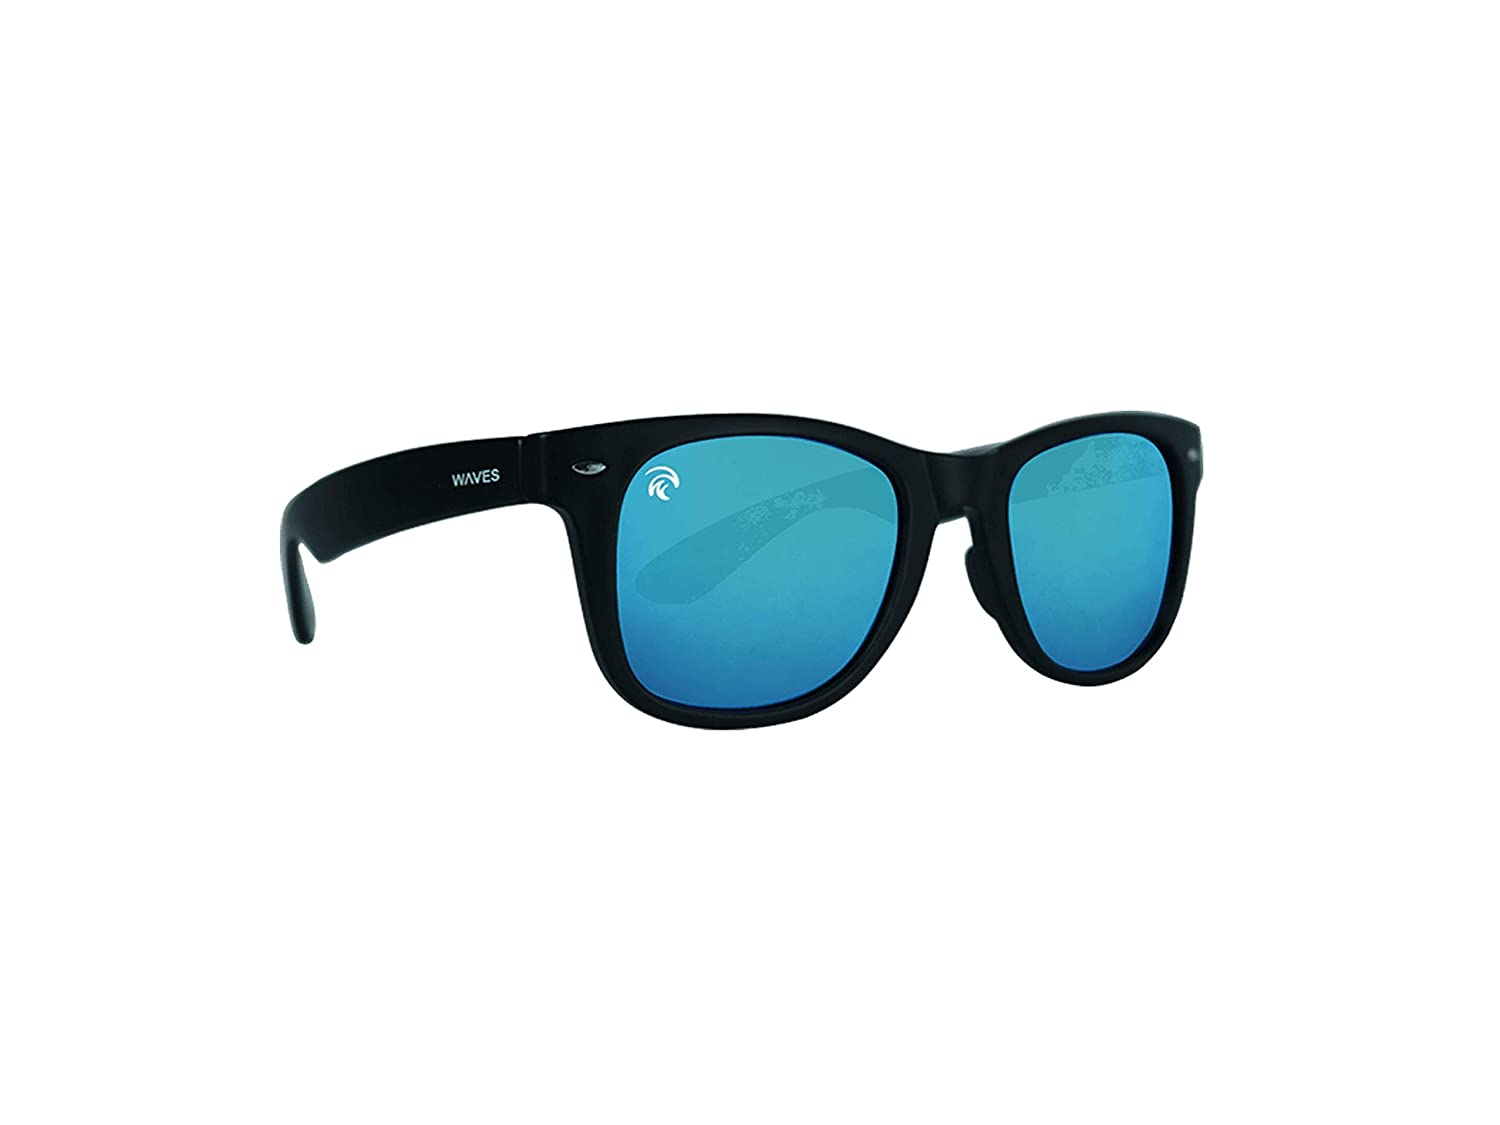 97fc398eeabc2 Amazon.com  Waves Gear Floating Polarized Sunglasses